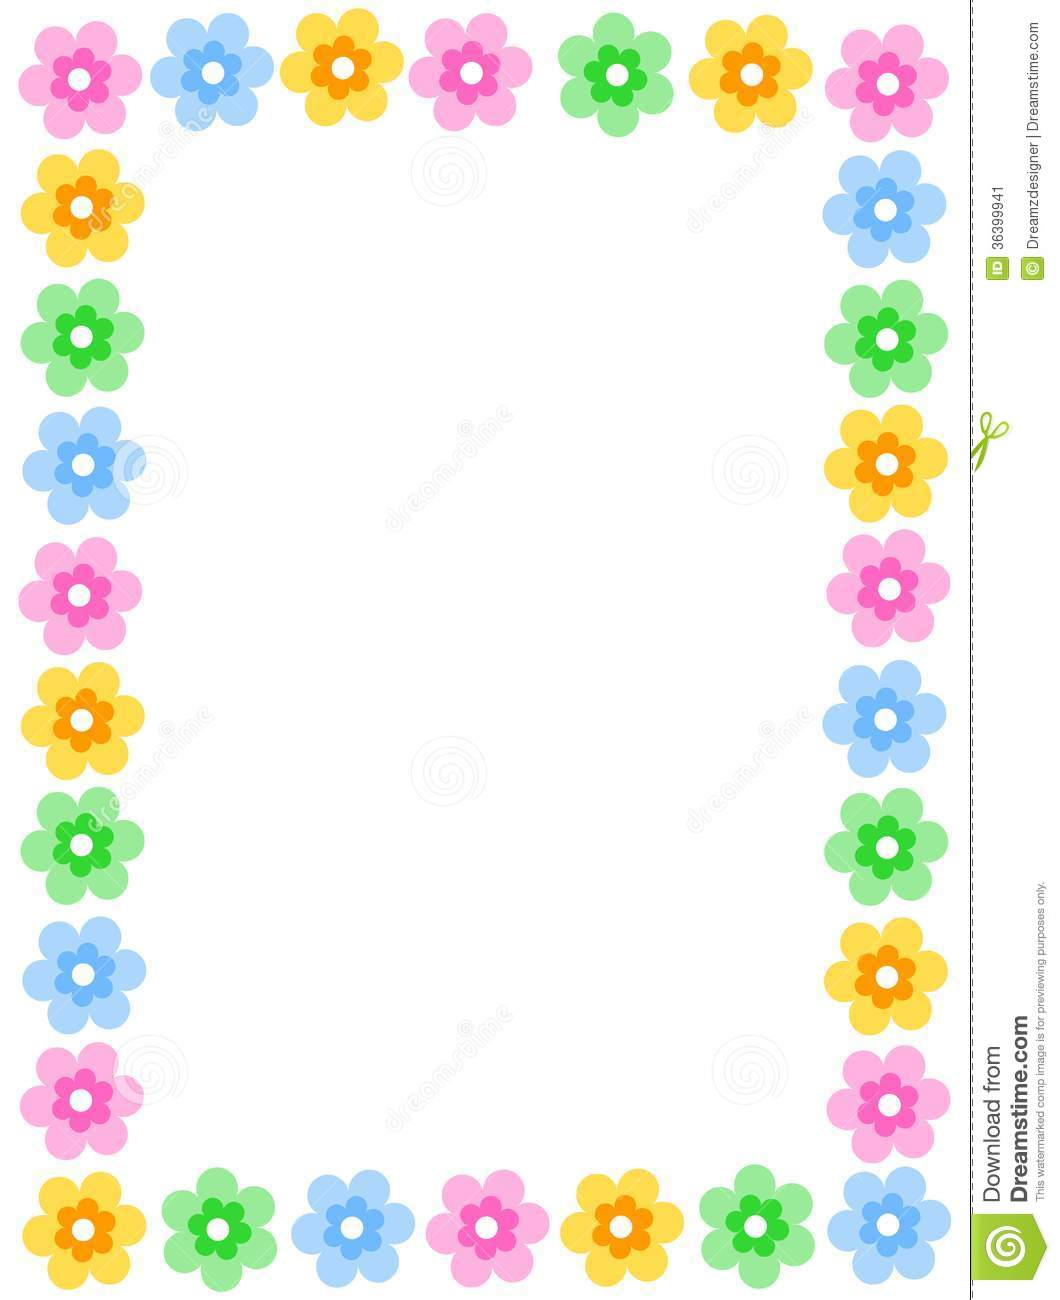 ... Clip Art Borders Frames besides Butterfly Borders And Frames. on